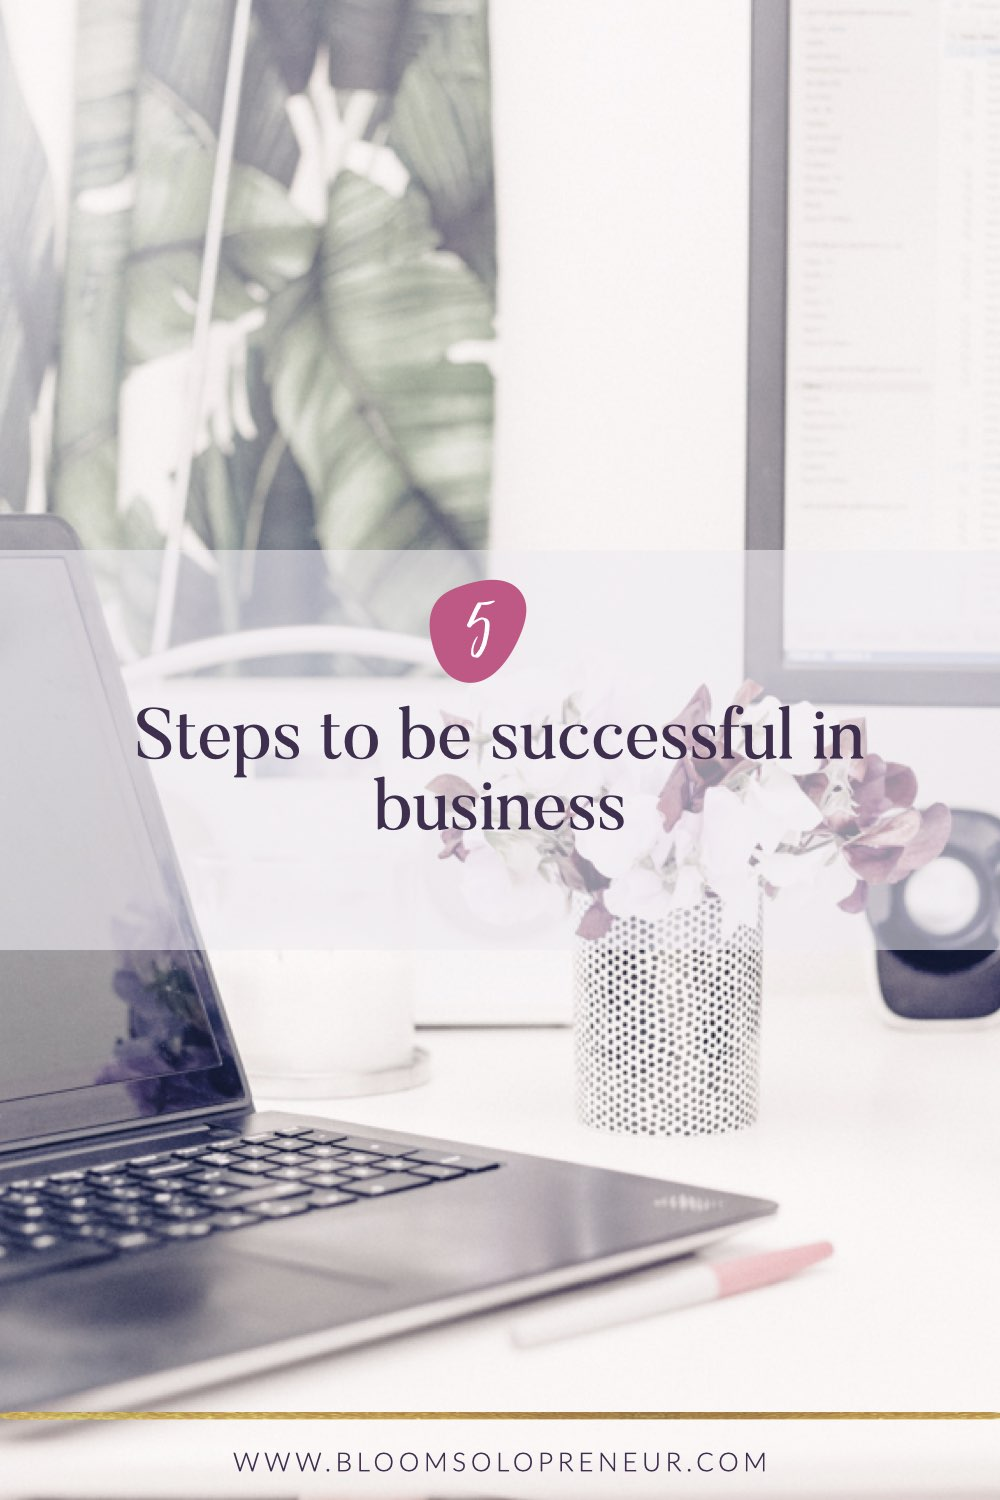 If you're an entrepreneur with a creative small business and it is floundering, follow these 5 steps to learn how to be successful in business. 1. Define what business success means to you and define your business goals, 2. Know your numbers, 3. Create your business strategy for growth, 4. Only work on tasks that will grow your business, 5. Monitor your progress. This tips will help you learn what is important for your enterprise.